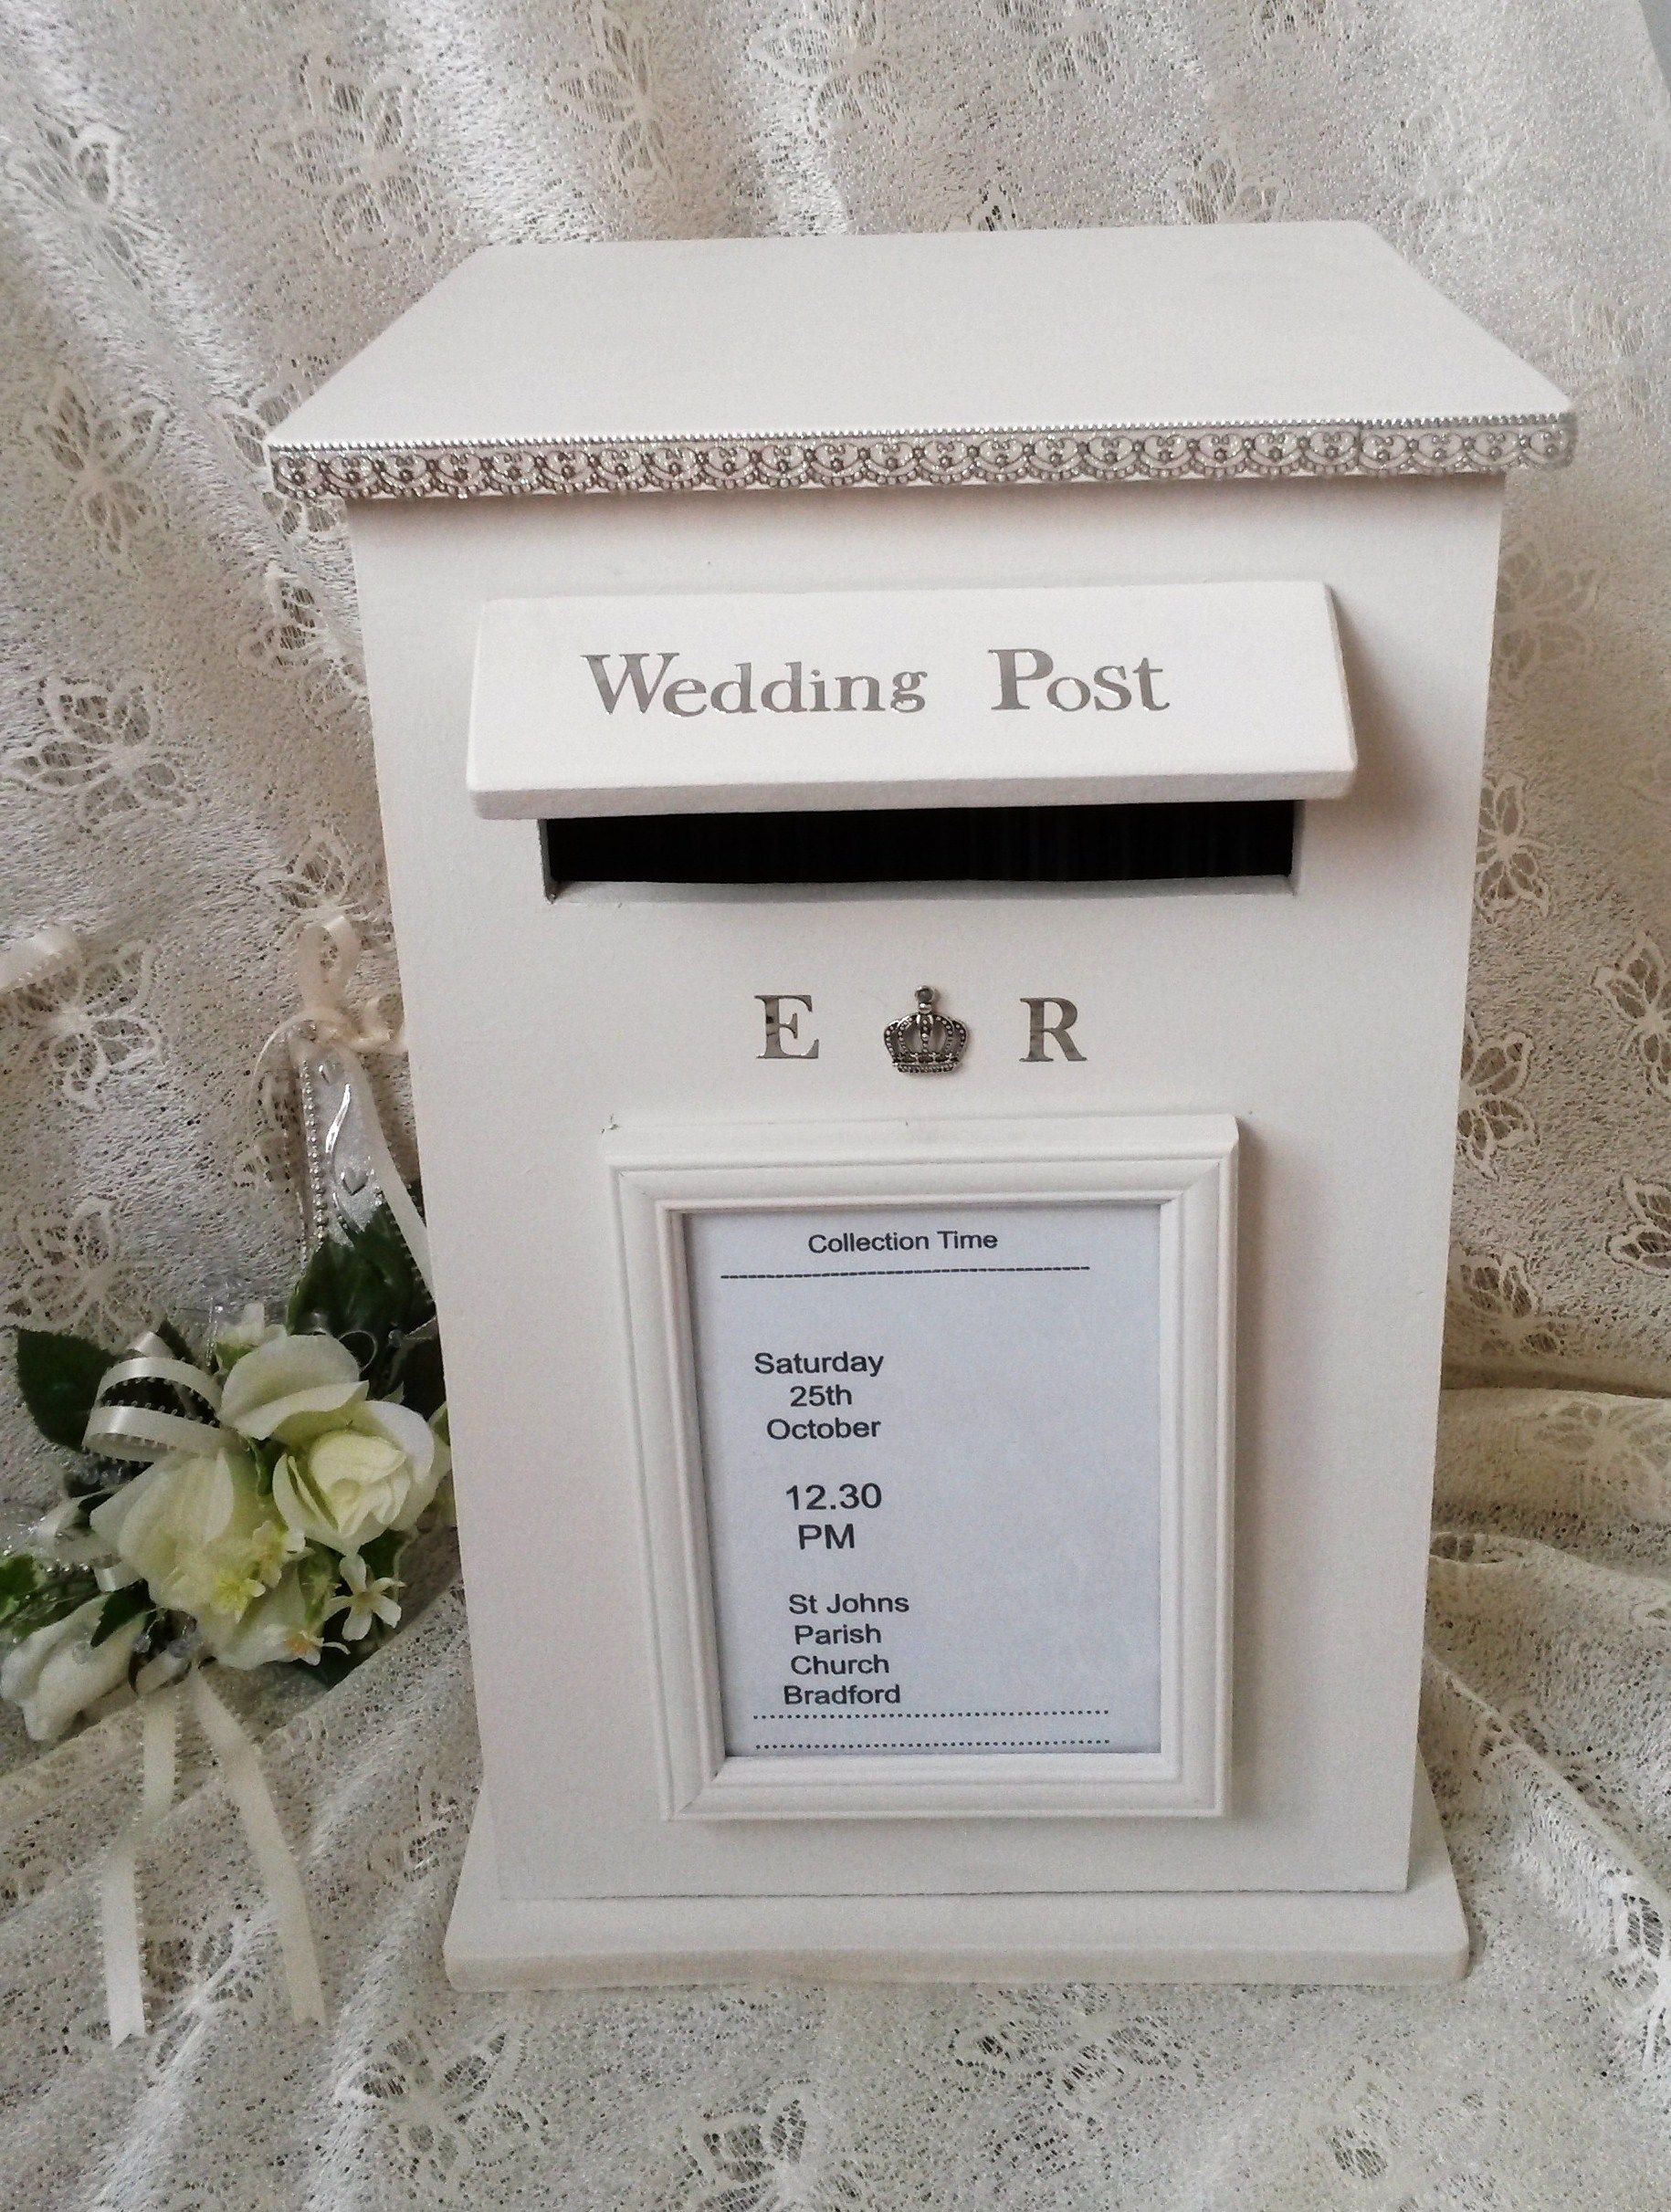 Decided To Try Making Wooden Wedding Postbo N This Is The Result My Mailboxwedding Post Boxwedding Cardswinter Ideaswinter